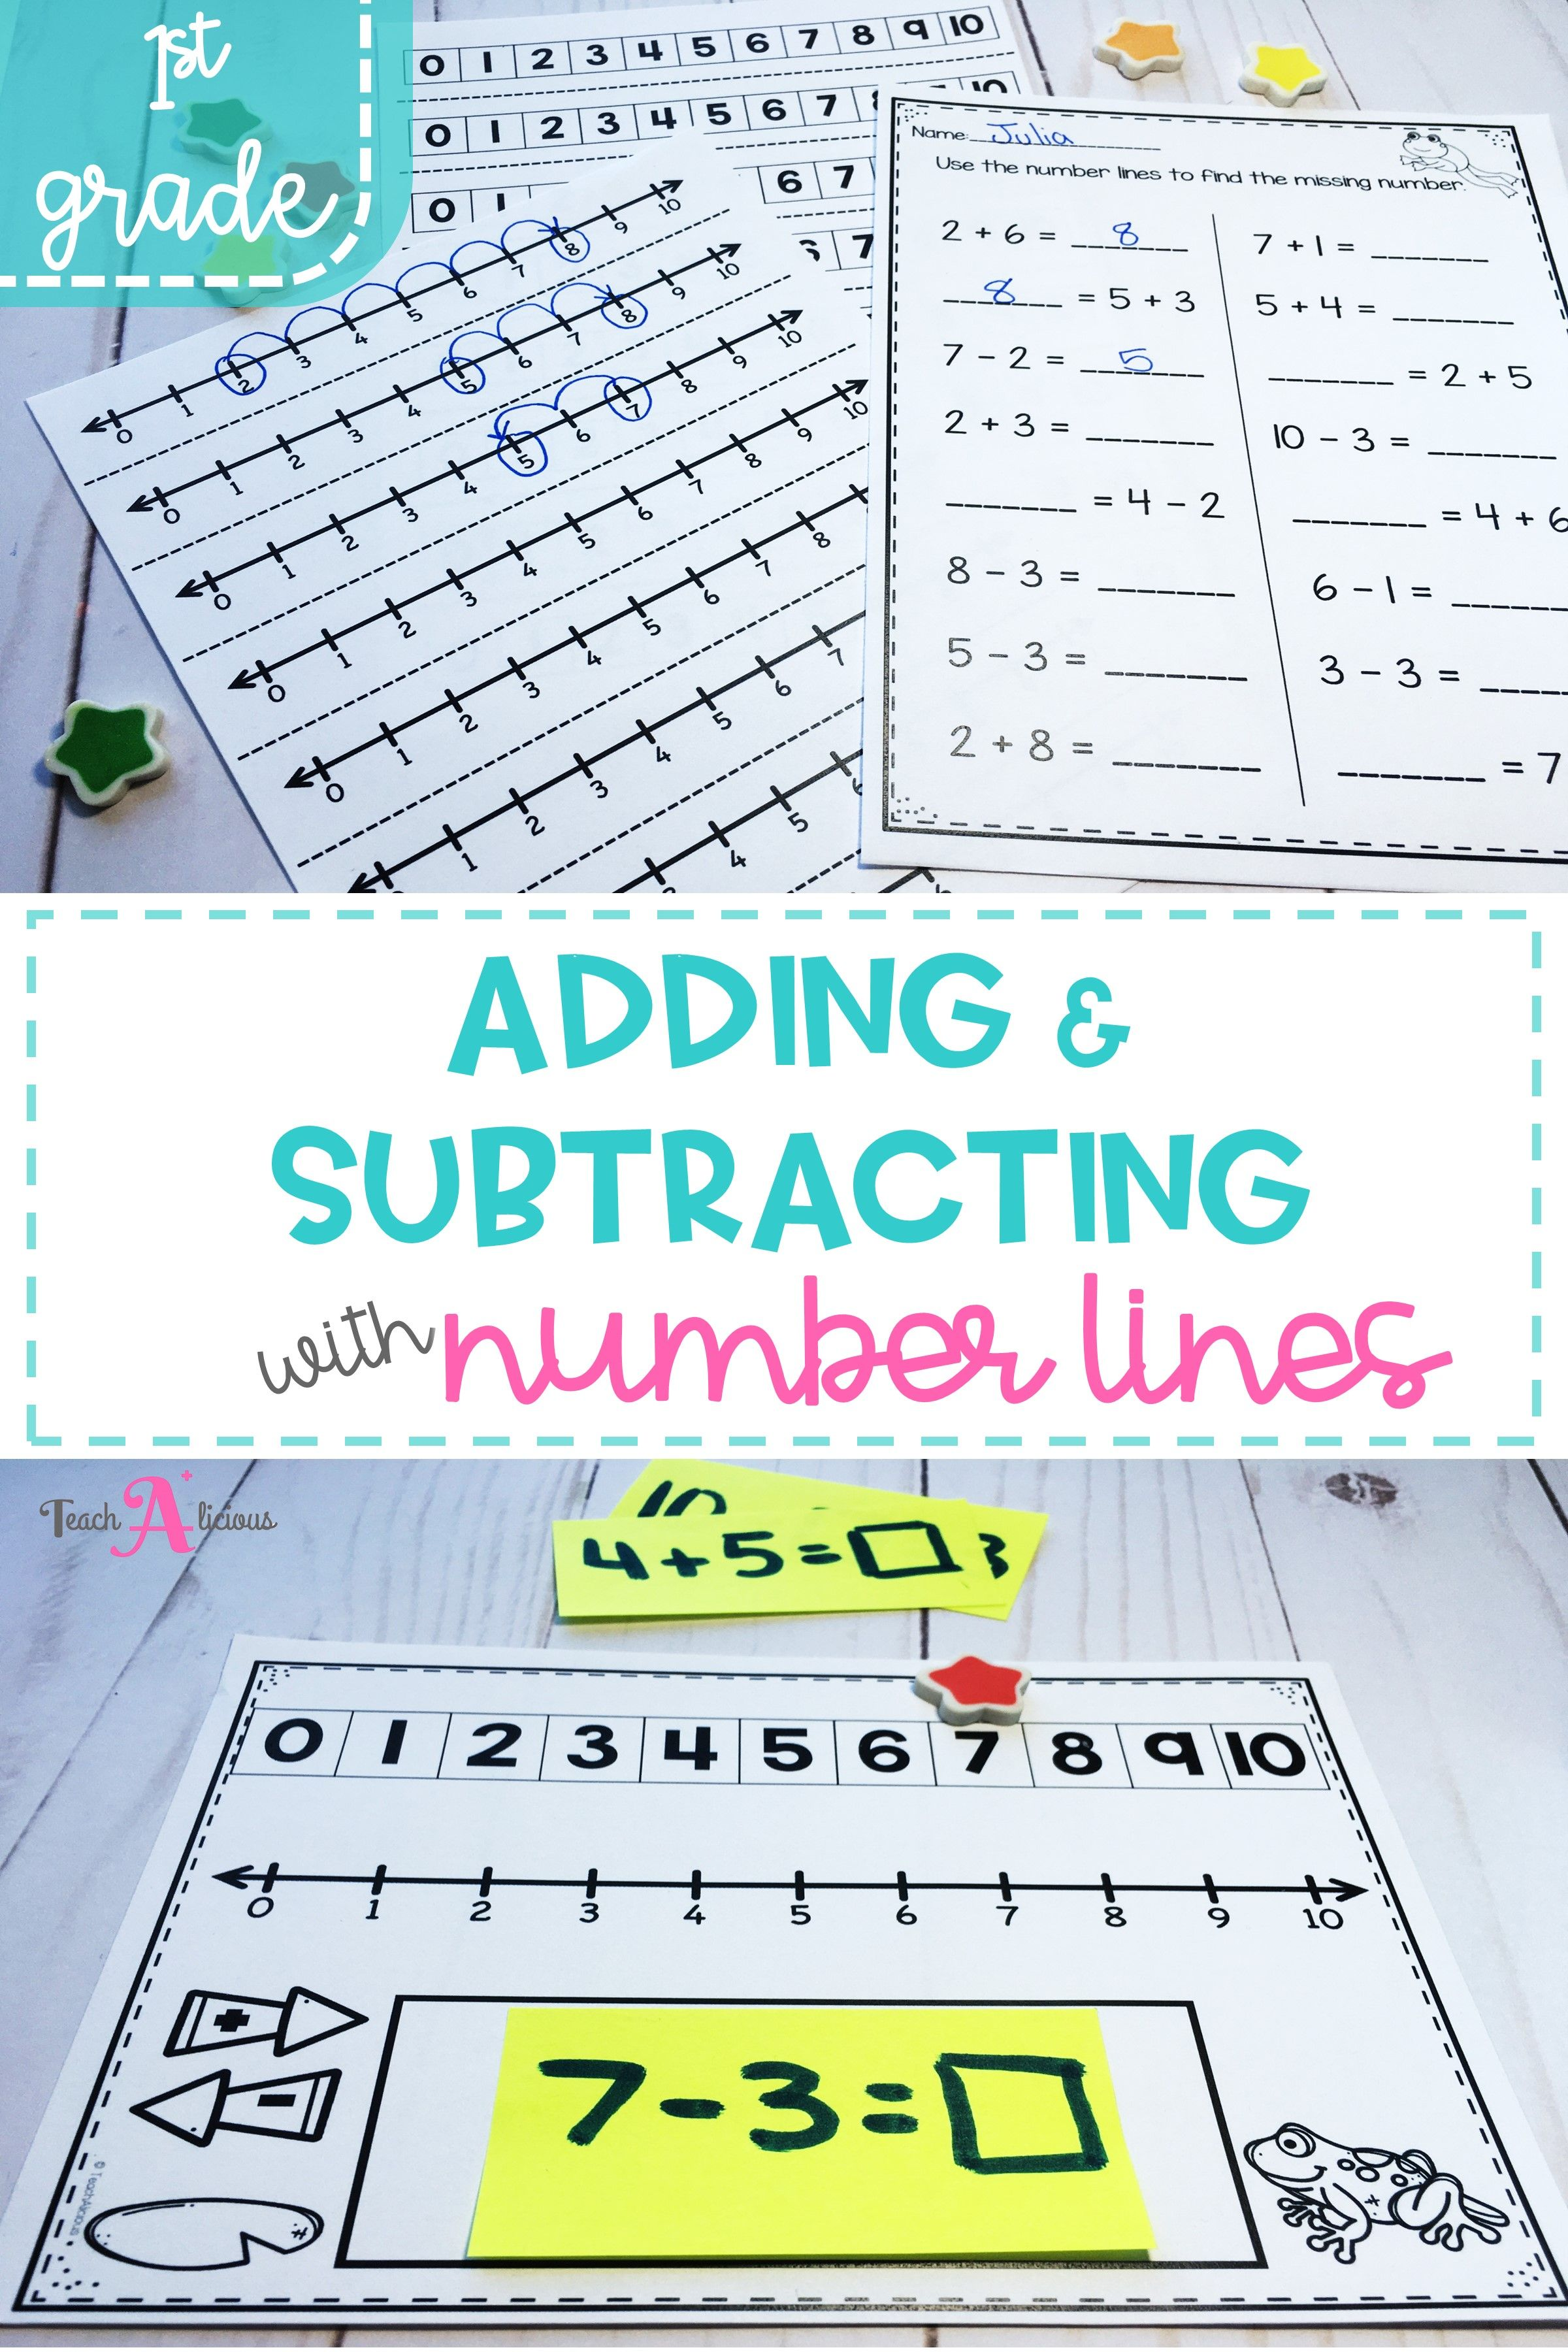 Adding Subtracting With Number Lines Kindergarten Resources Addition And Subtraction Dual Language Classroom Adding and subtracting using number